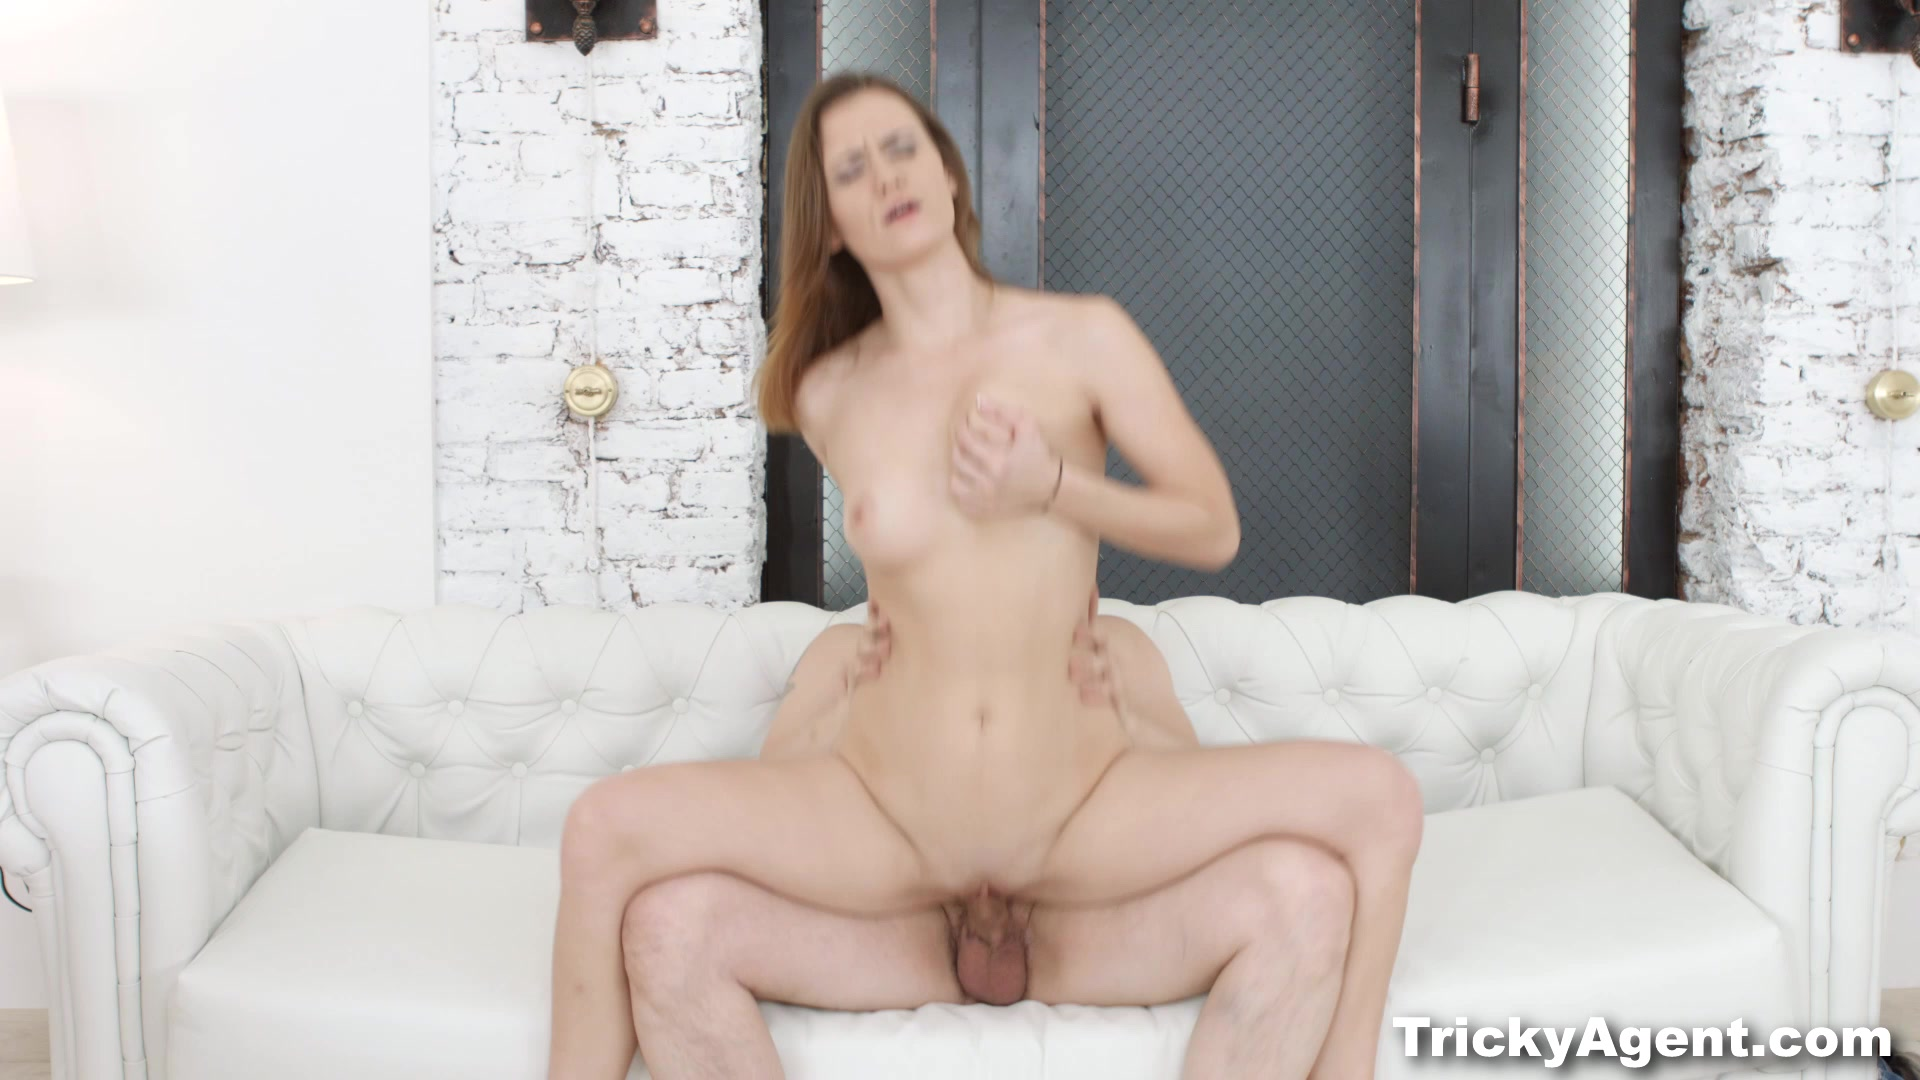 video com i anal Hot Nude